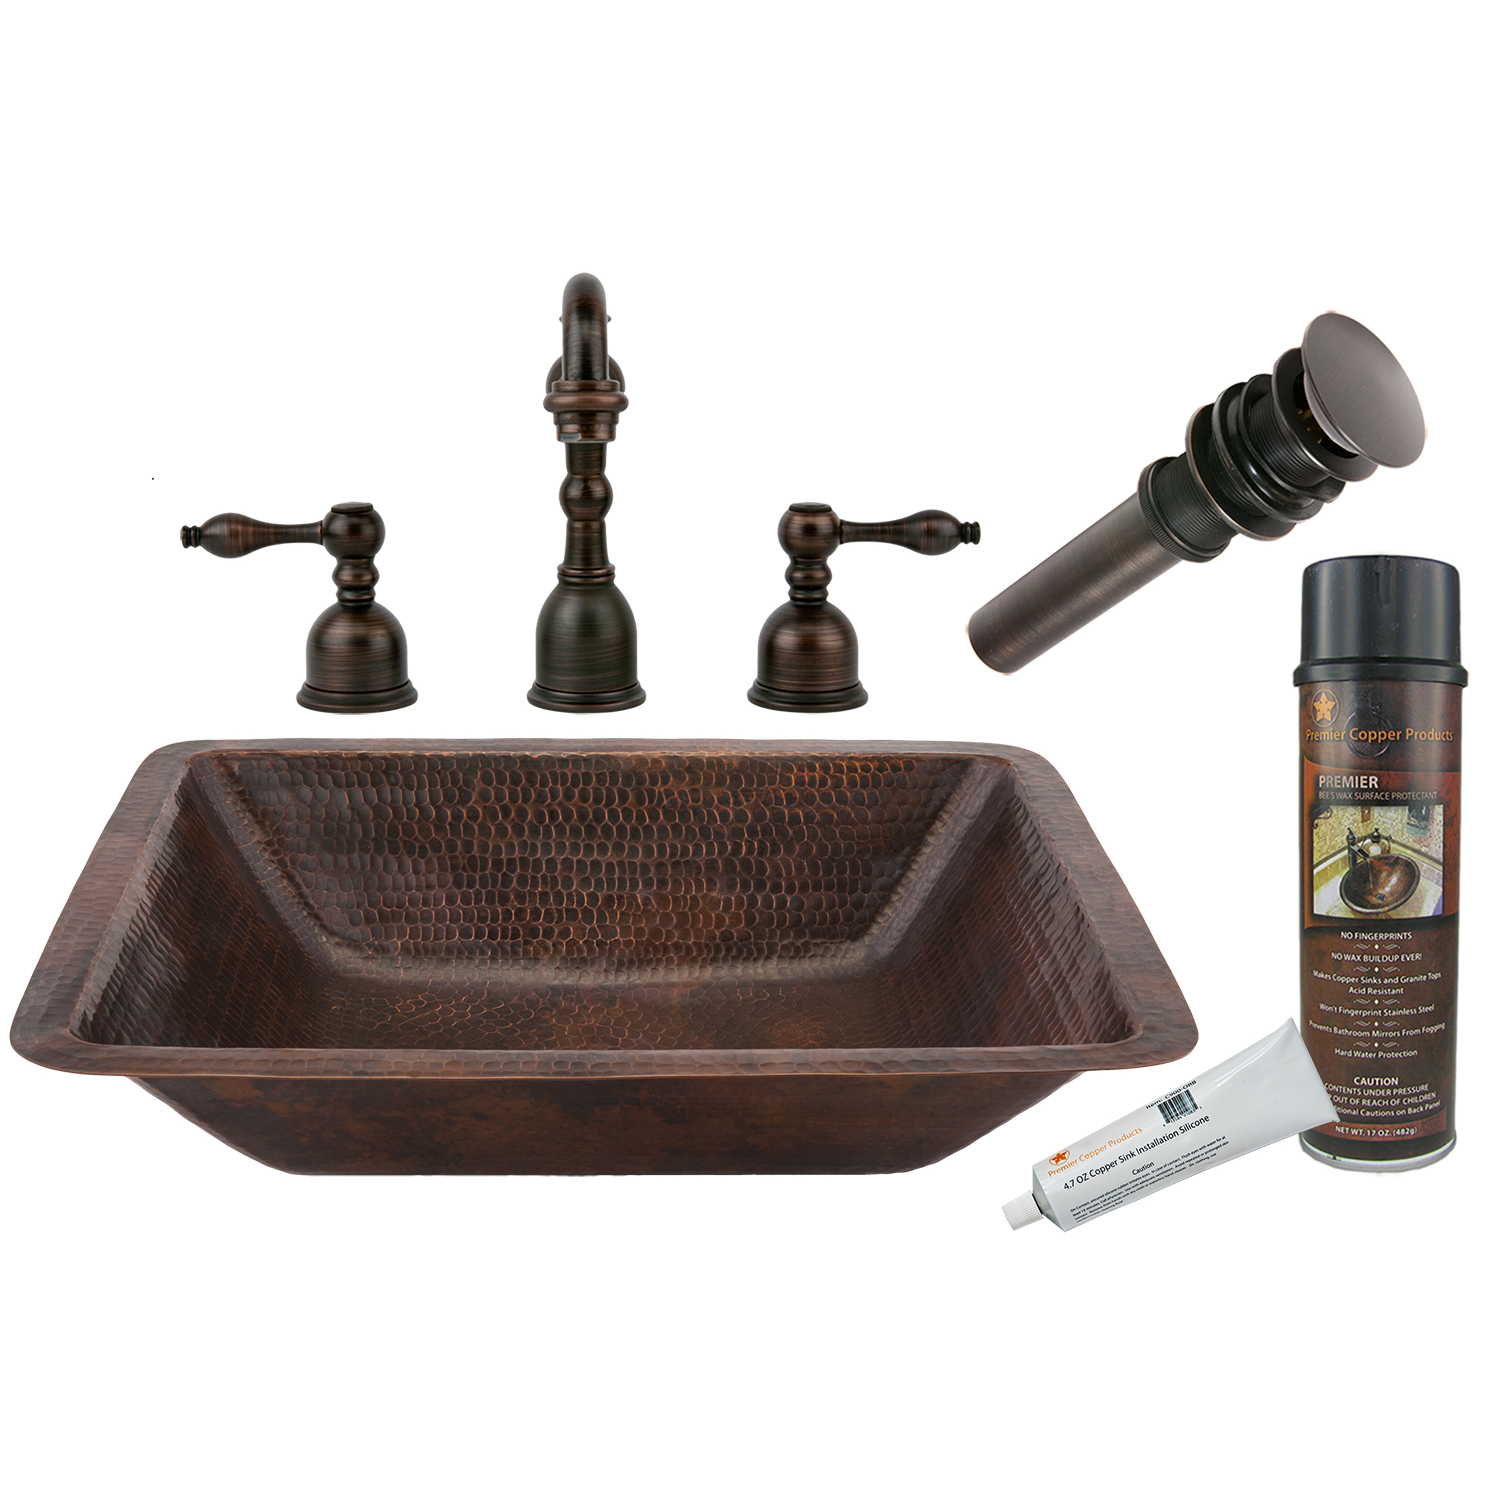 Rectangle Under Counter Hammered Copper Bathroom Sink, Faucet and Accessories Package, Oil Rubbed Bronze